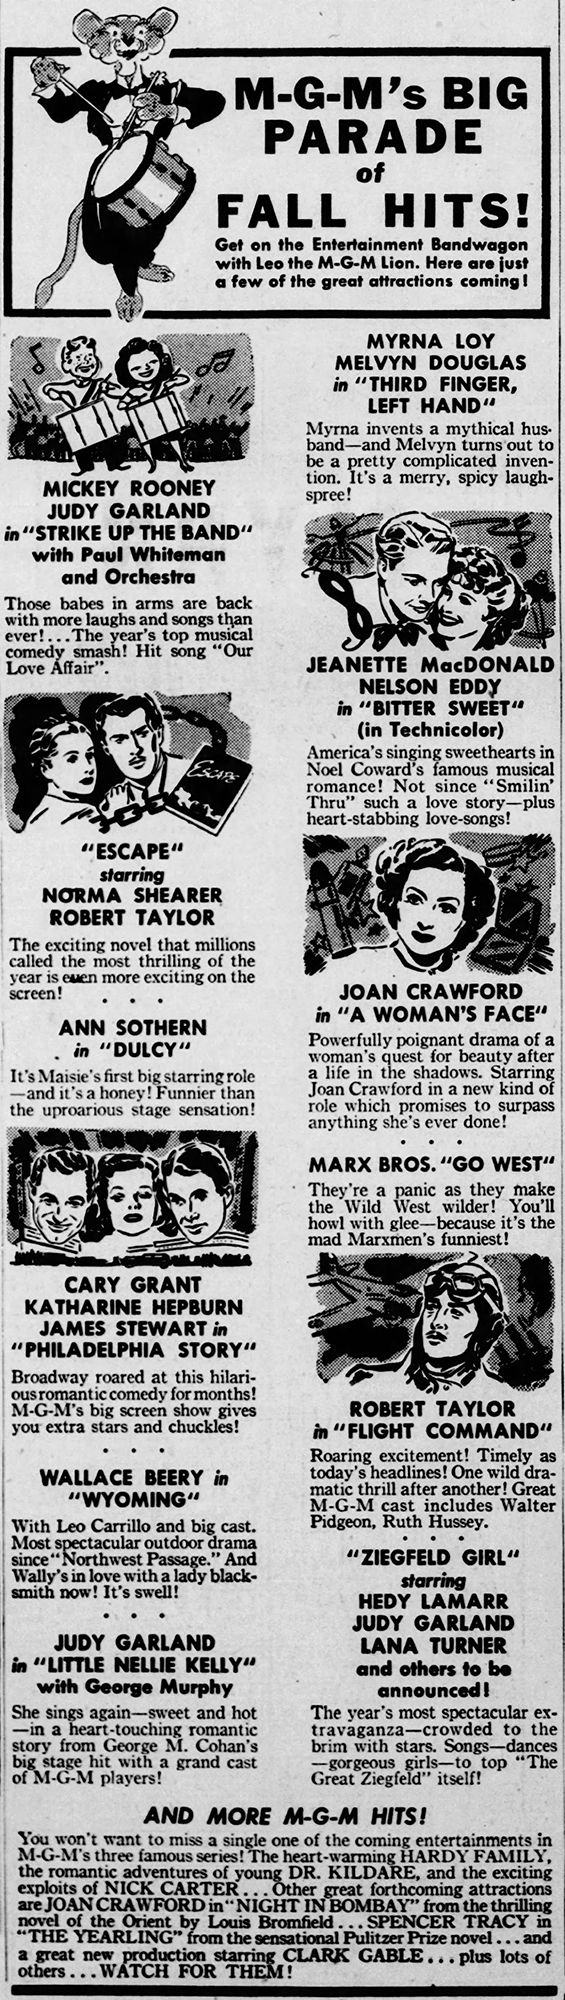 August-29,-1940-MGM-HITS-The_St_Louis_Star_and_Times-1